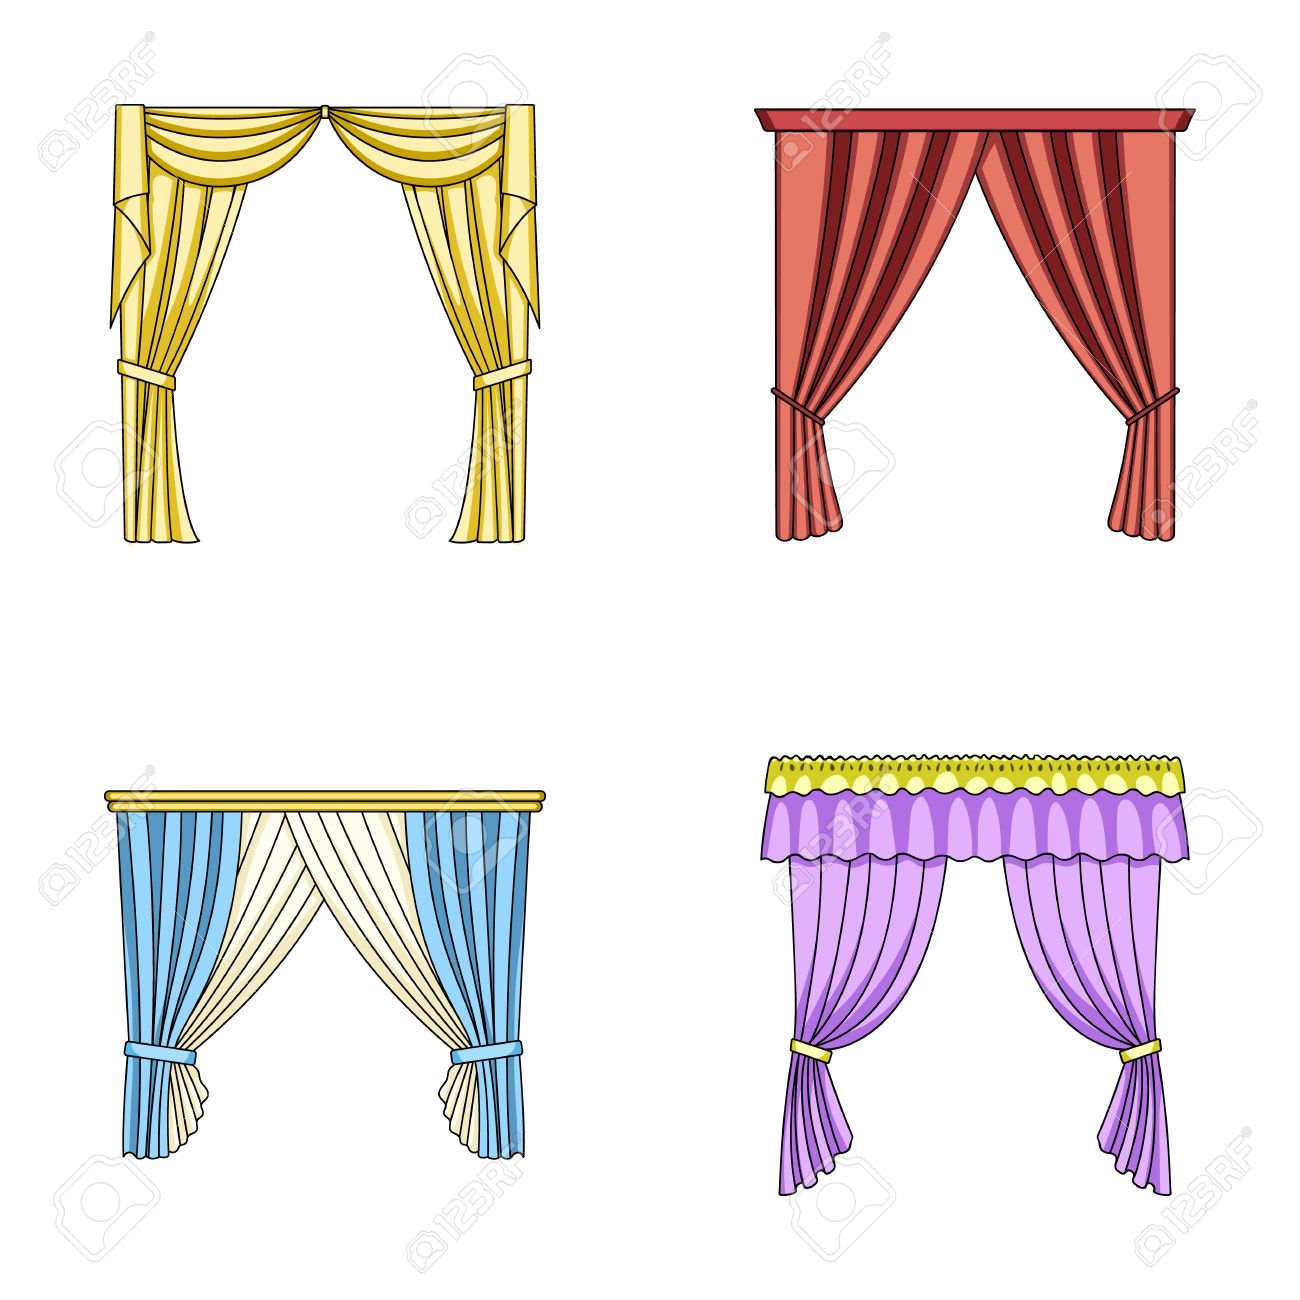 different types of window